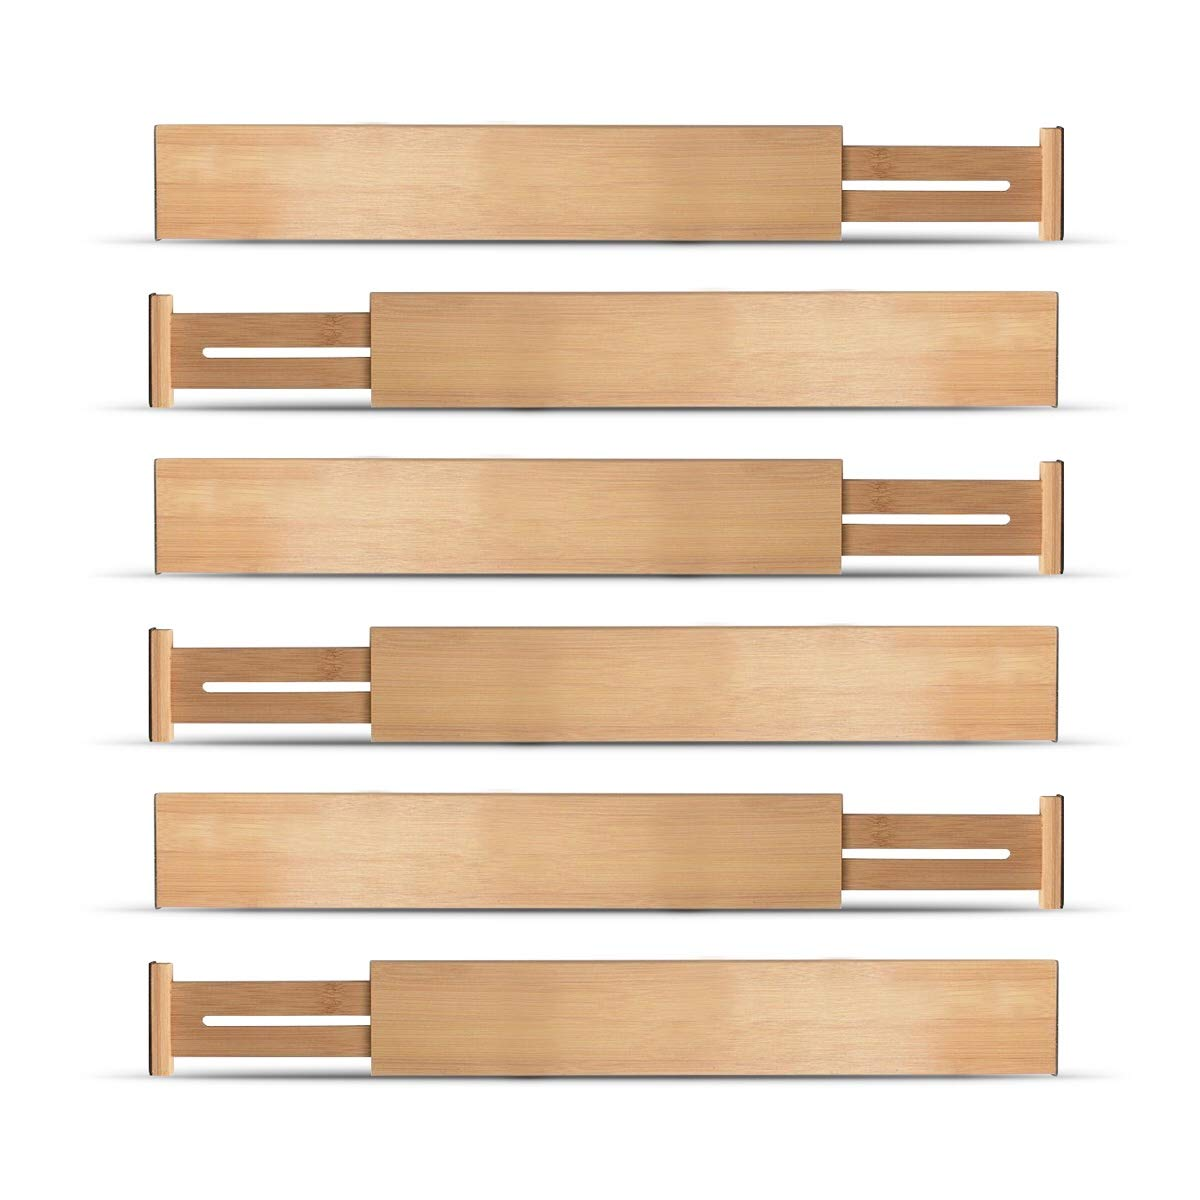 Bamboo Drawer Divider Set of 6 - Kitchen Drawer Organizer Spring Adjustable & Expendable Drawer Dividers, Made of 100% Organic Bamboo - Best for Kitchen, Dresser, Bedroom, Baby Drawer, Bathroom, Desk